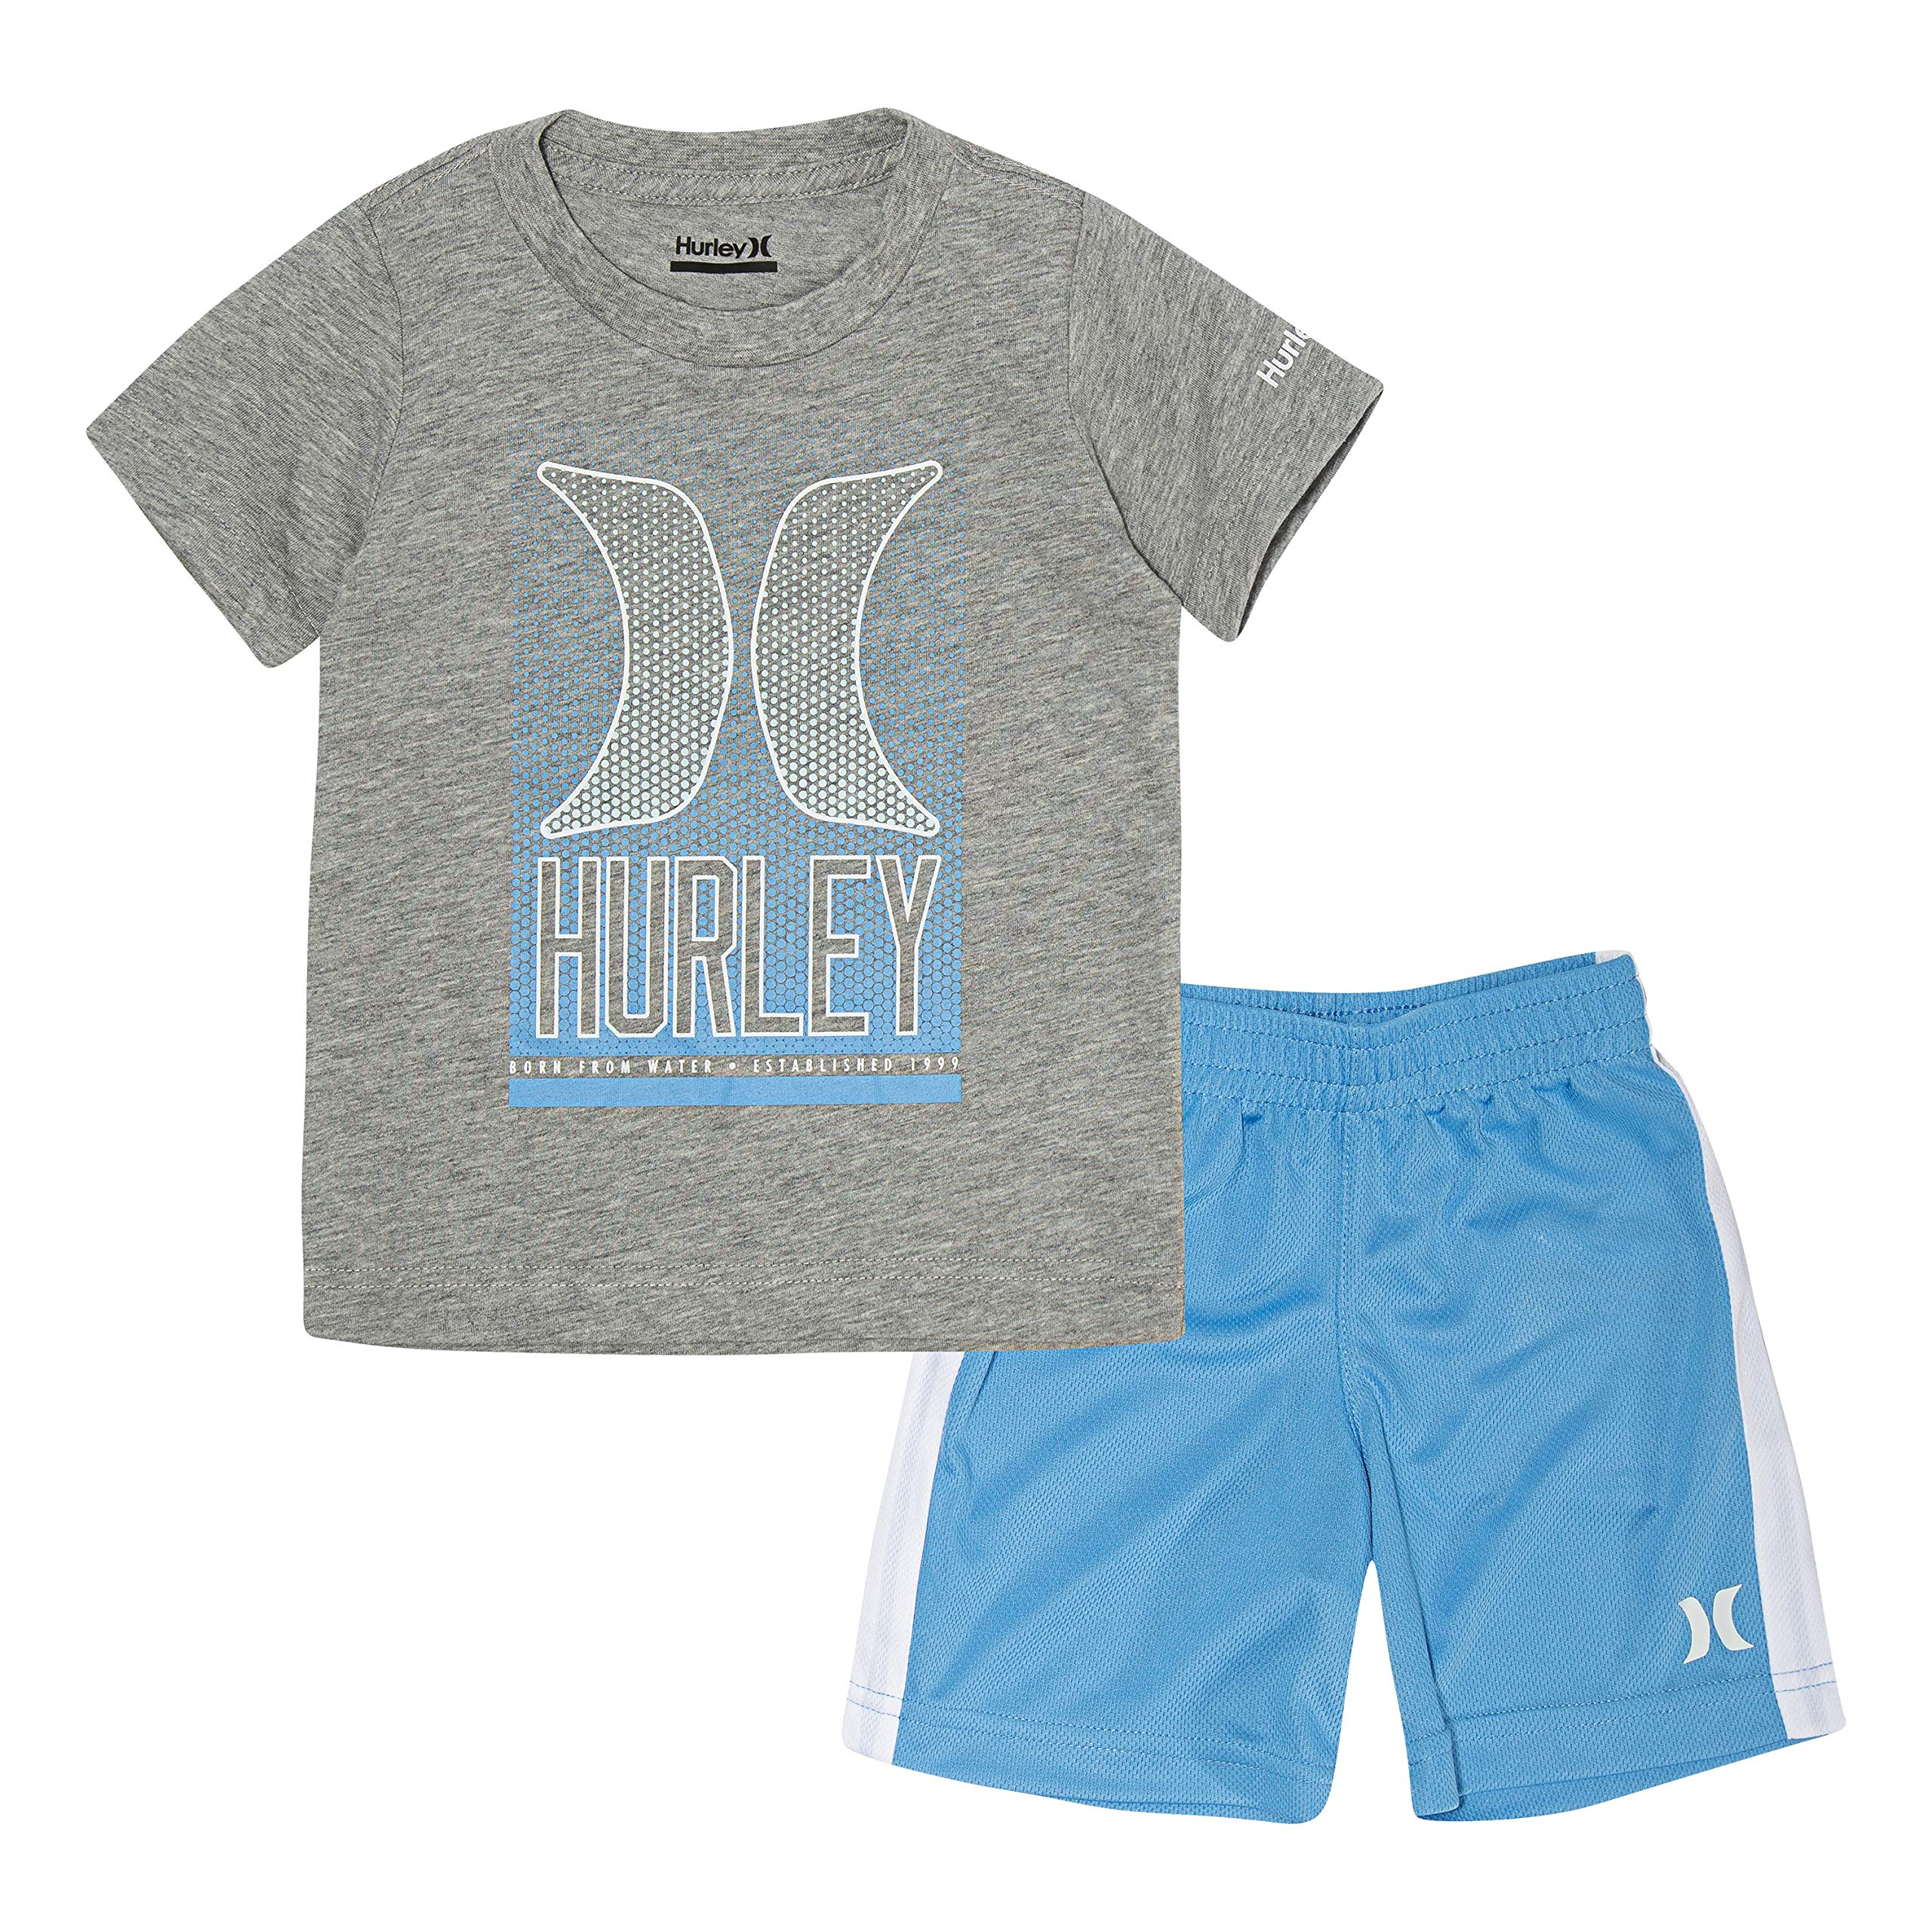 Hurley Baby Boys Graphic T-Shirt and Shorts 2-Piece Outfit Set